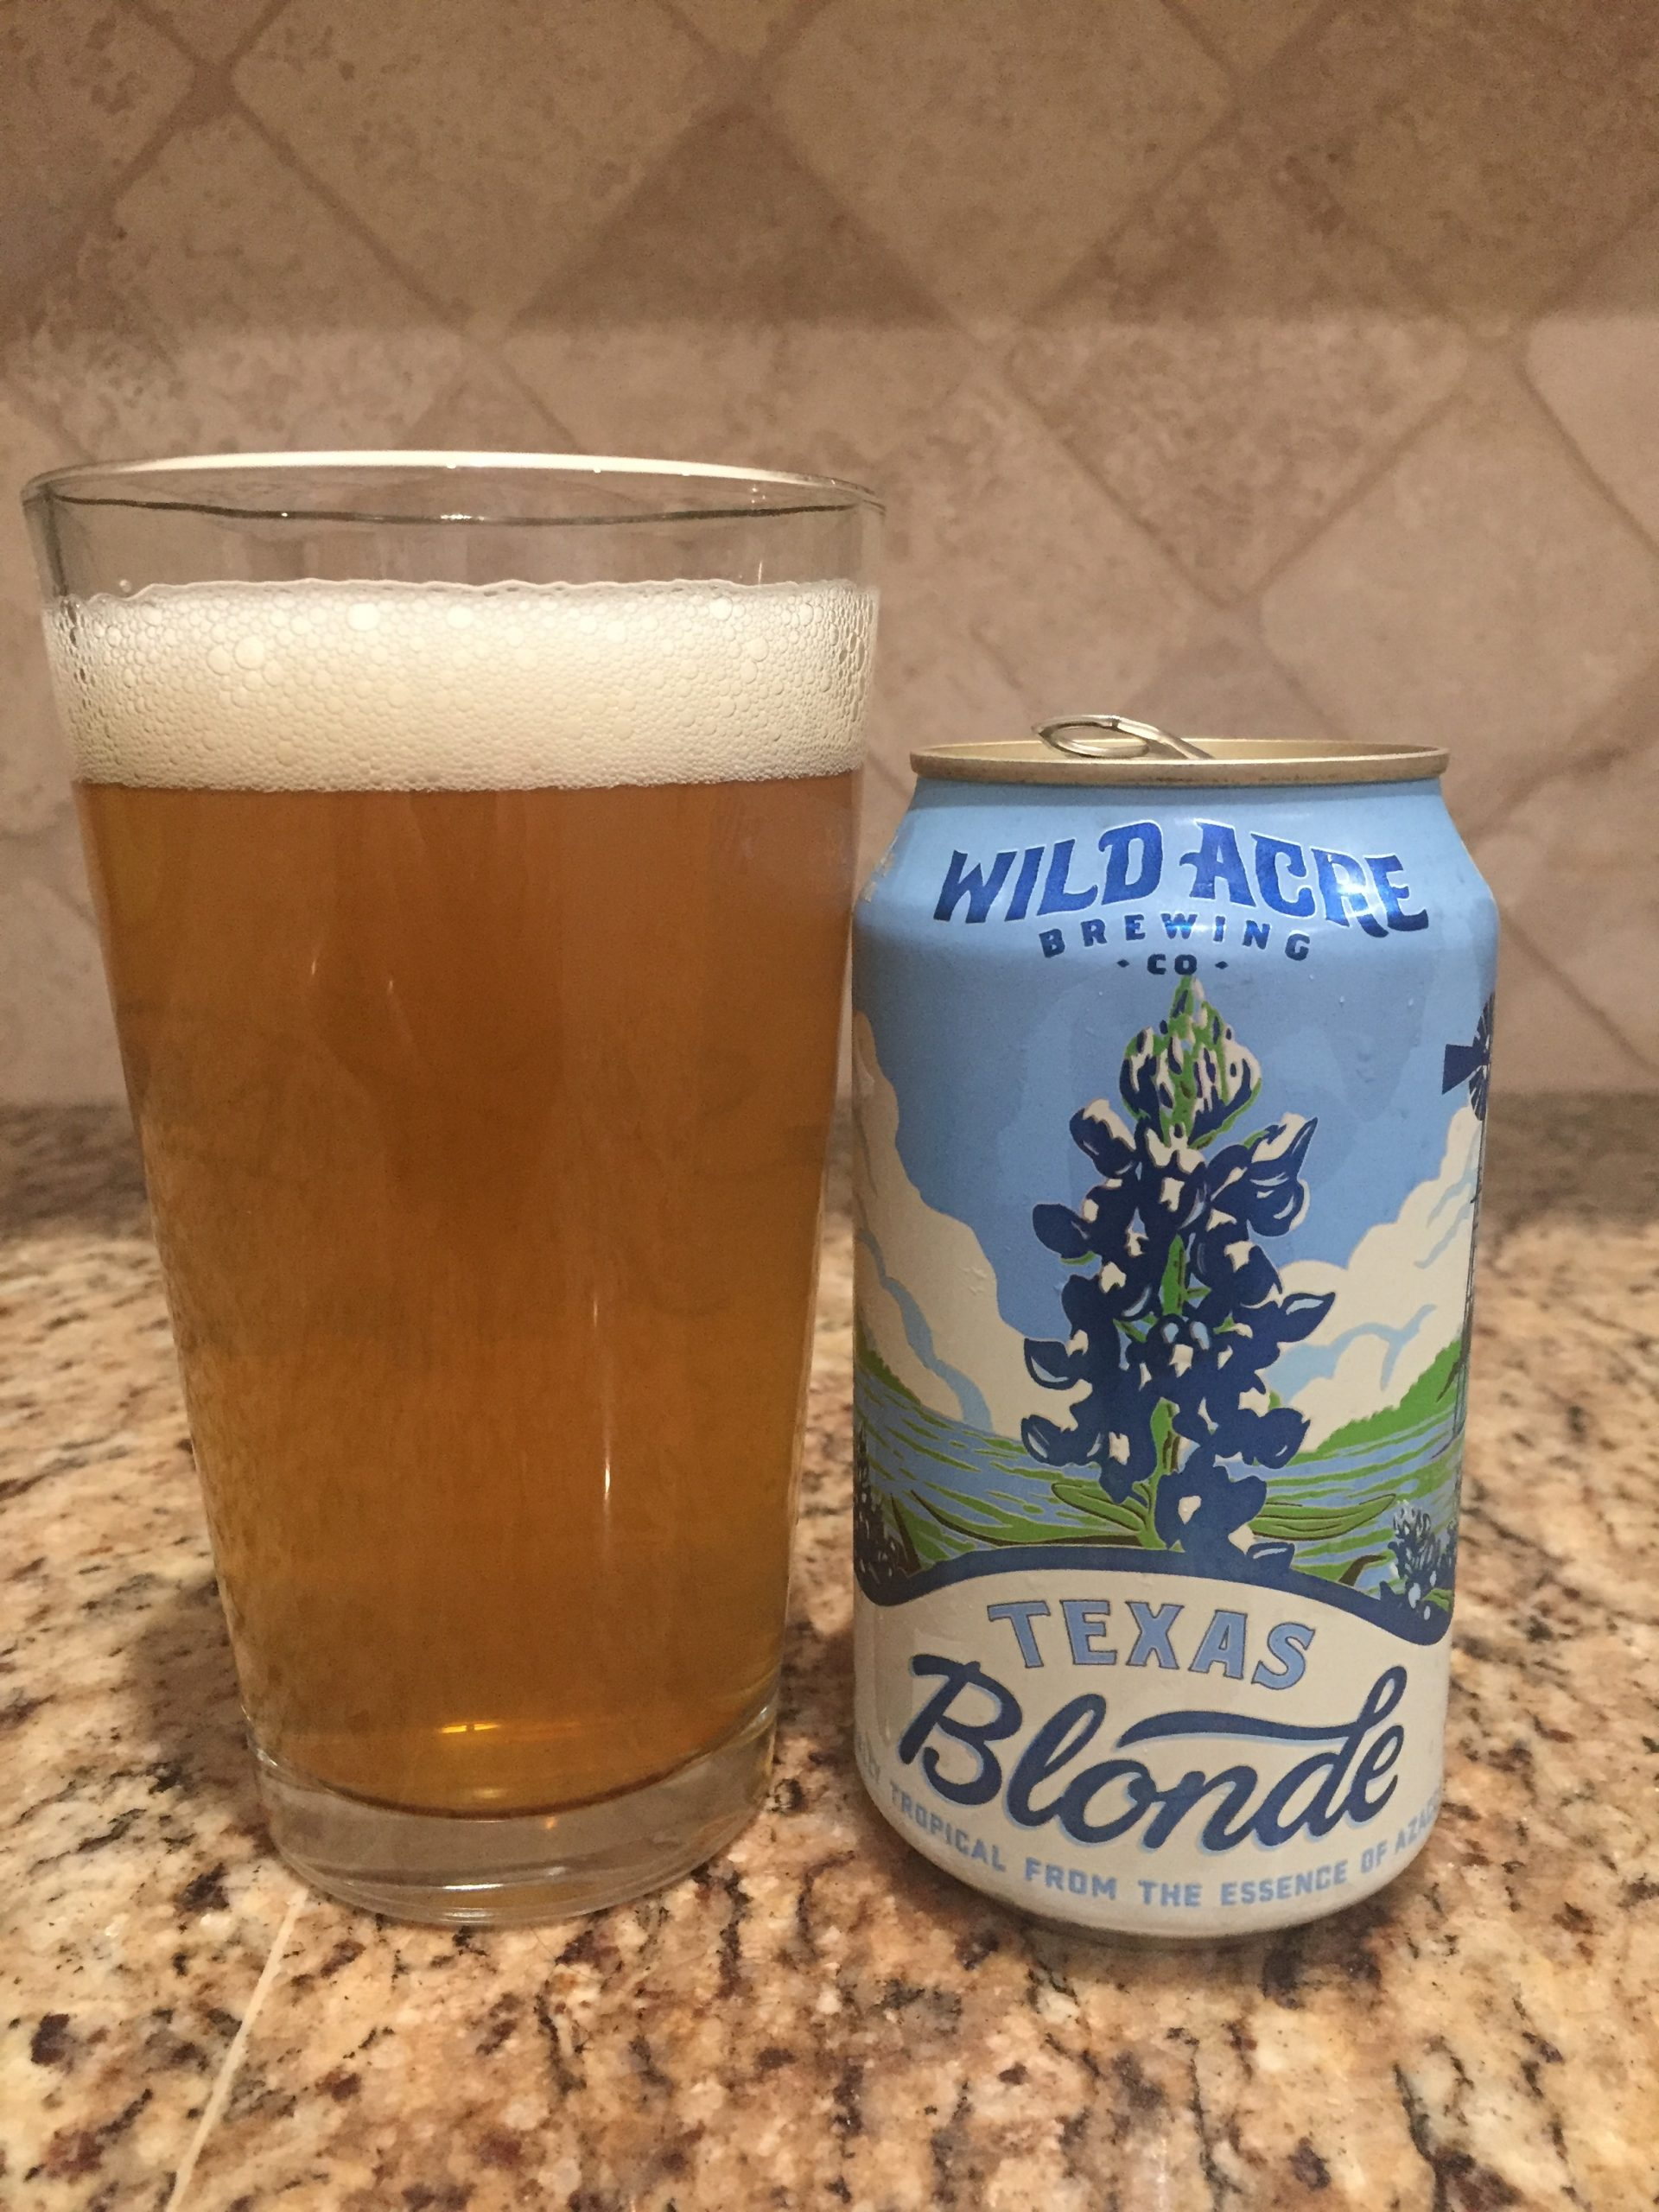 A 12 oz can of Texas blond from Wild Acre Brewing Company sits next to a pint glass full of a brassy golden beer with a one finger head.